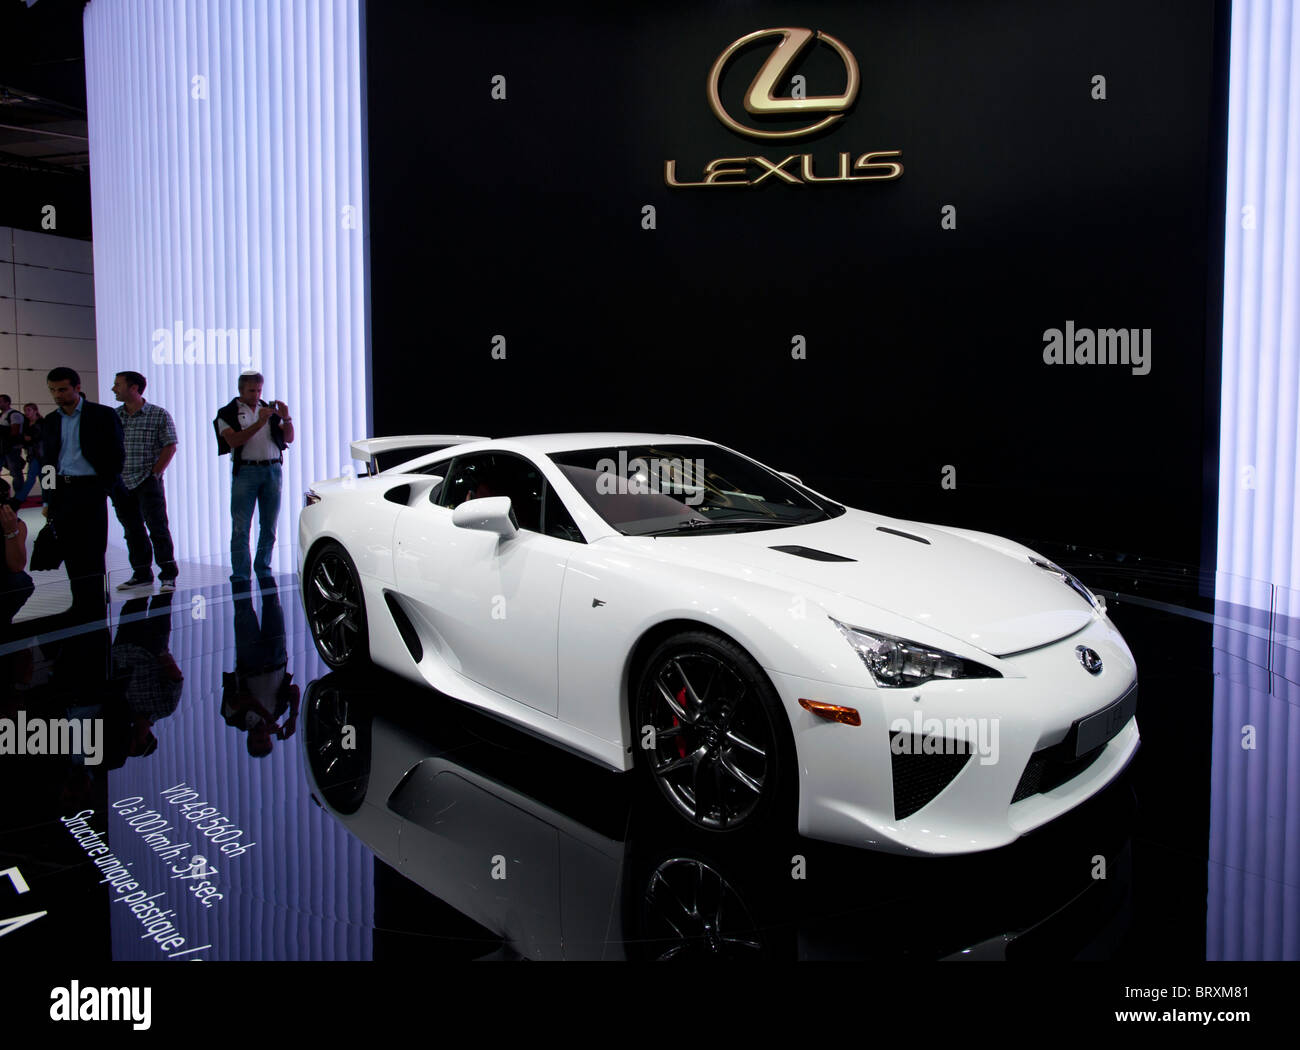 Lexus LFA On Display At The Paris Motor Show 2010   Stock Image